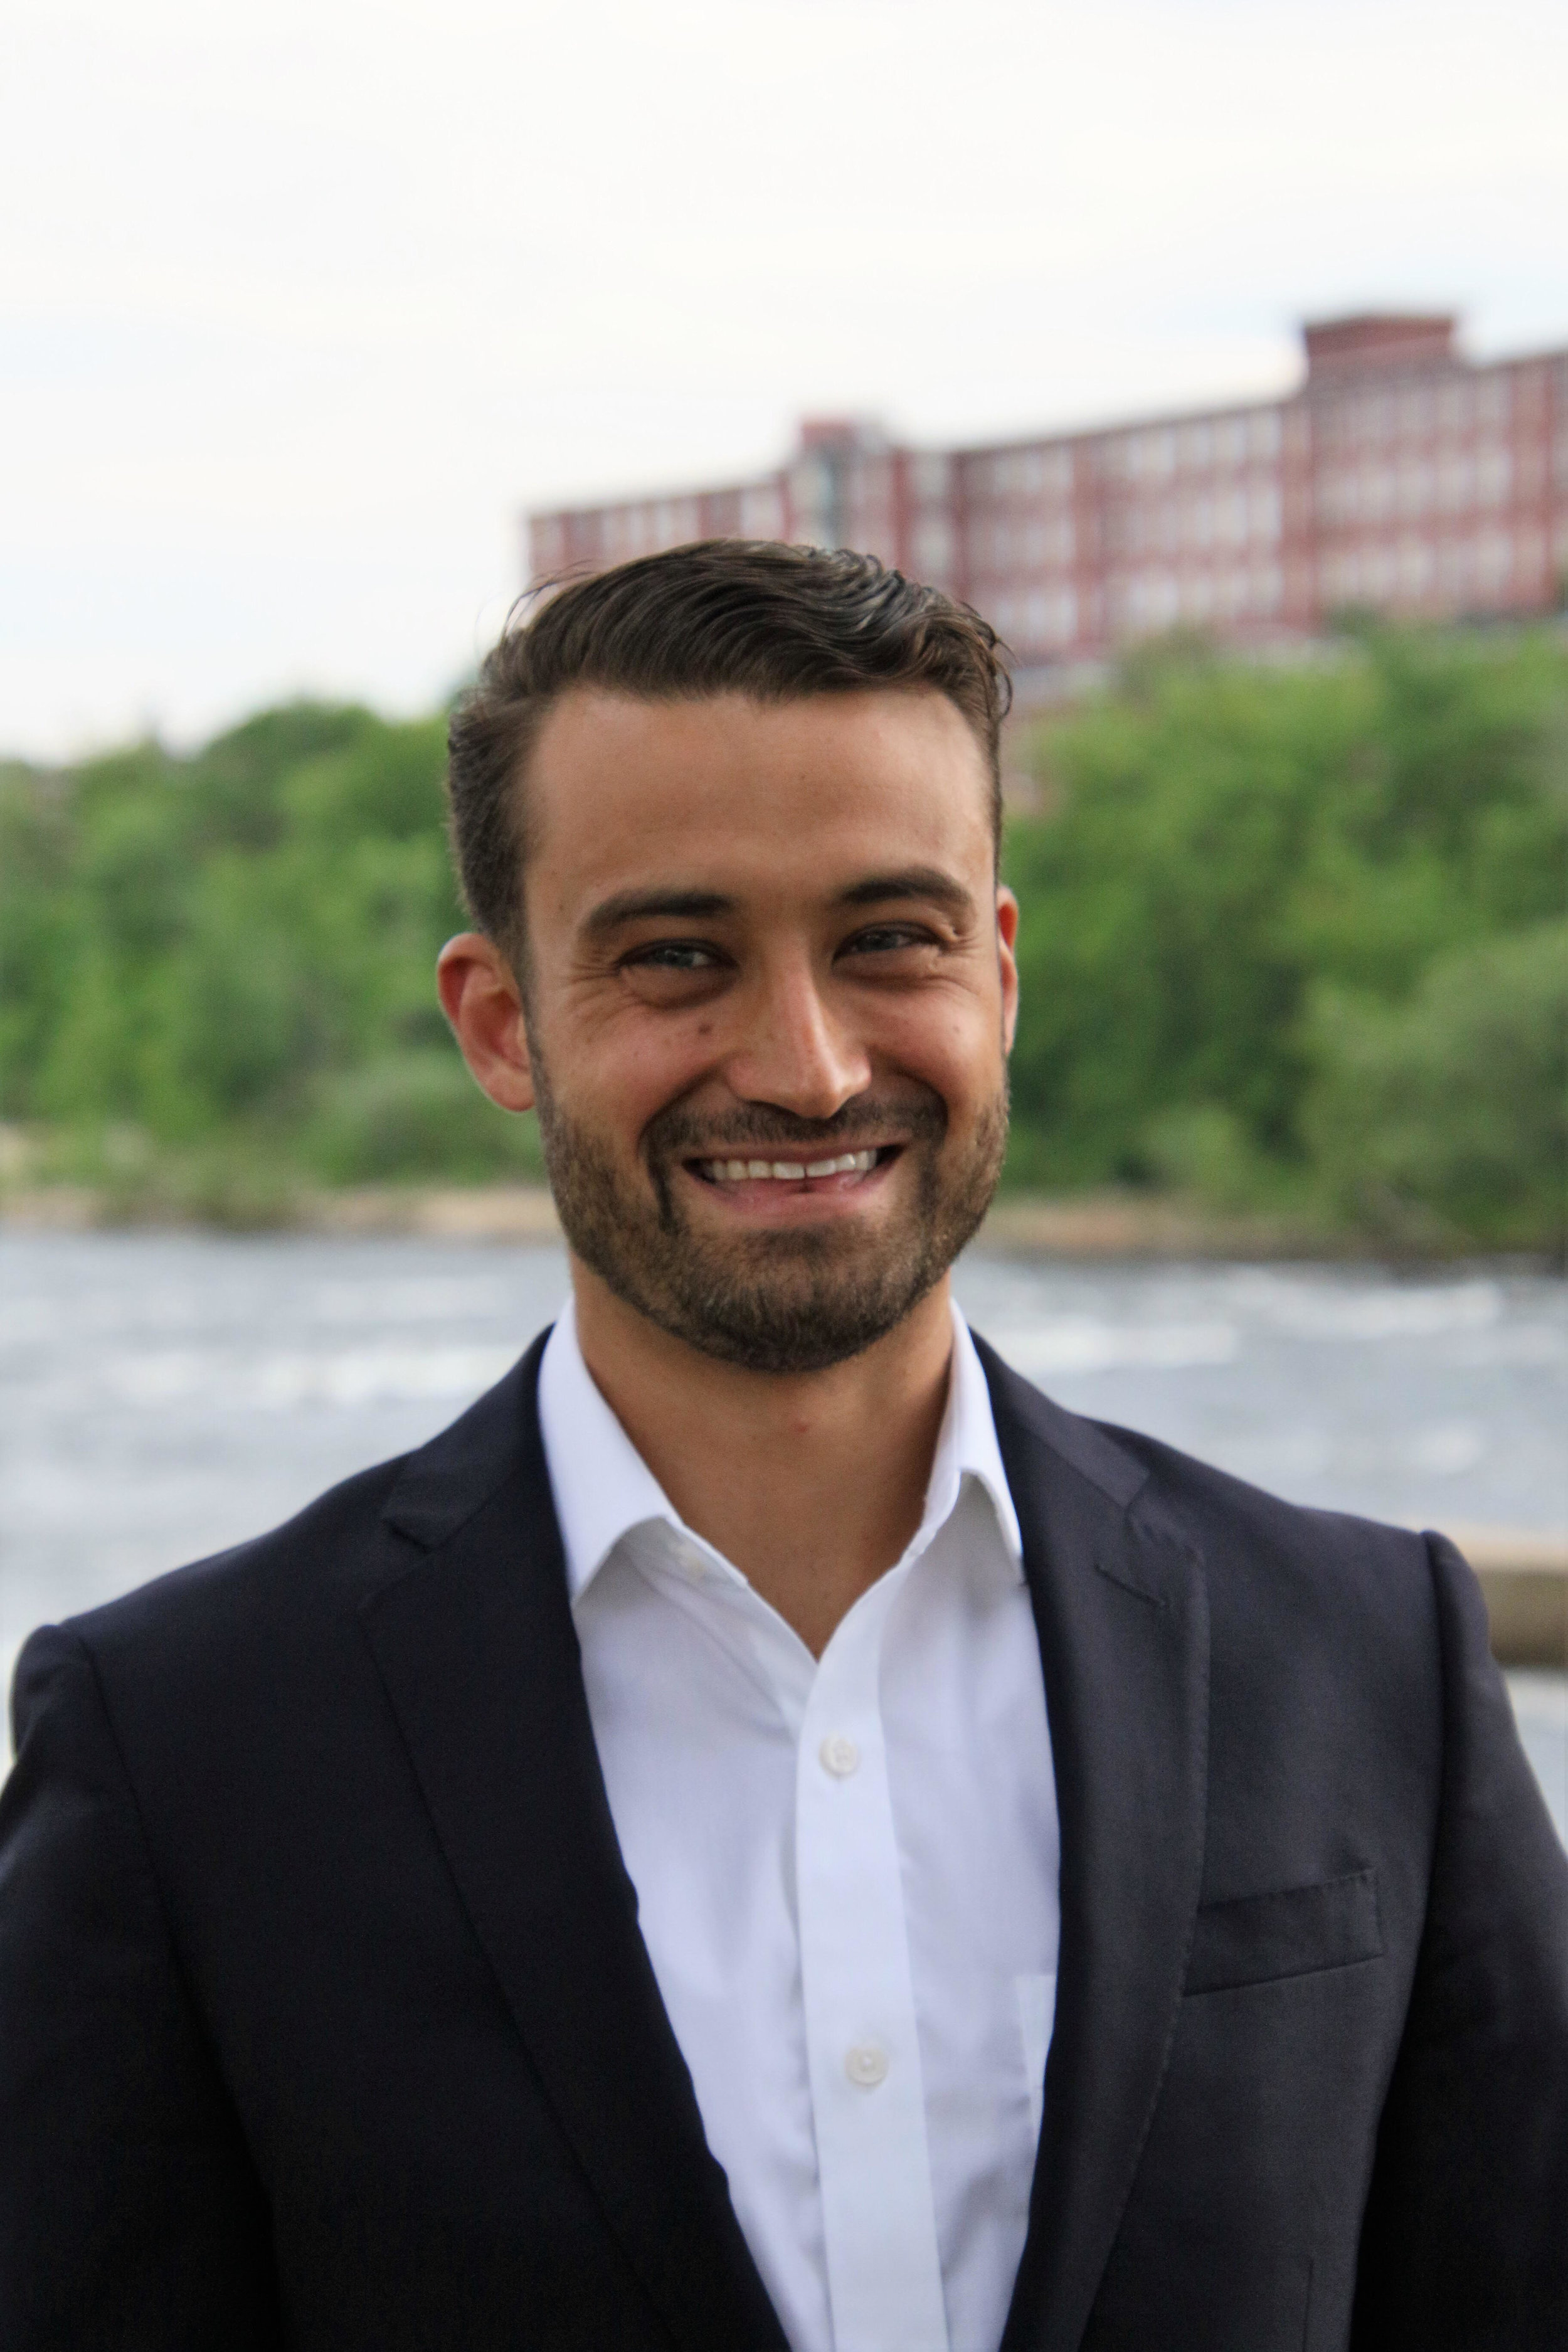 Dante Vitagliano is a New England based political consultant and campaign strategist. He is a co-founder of Pinnacle Campaign Strategies.    Email: dante@pinncalecampaigns.com